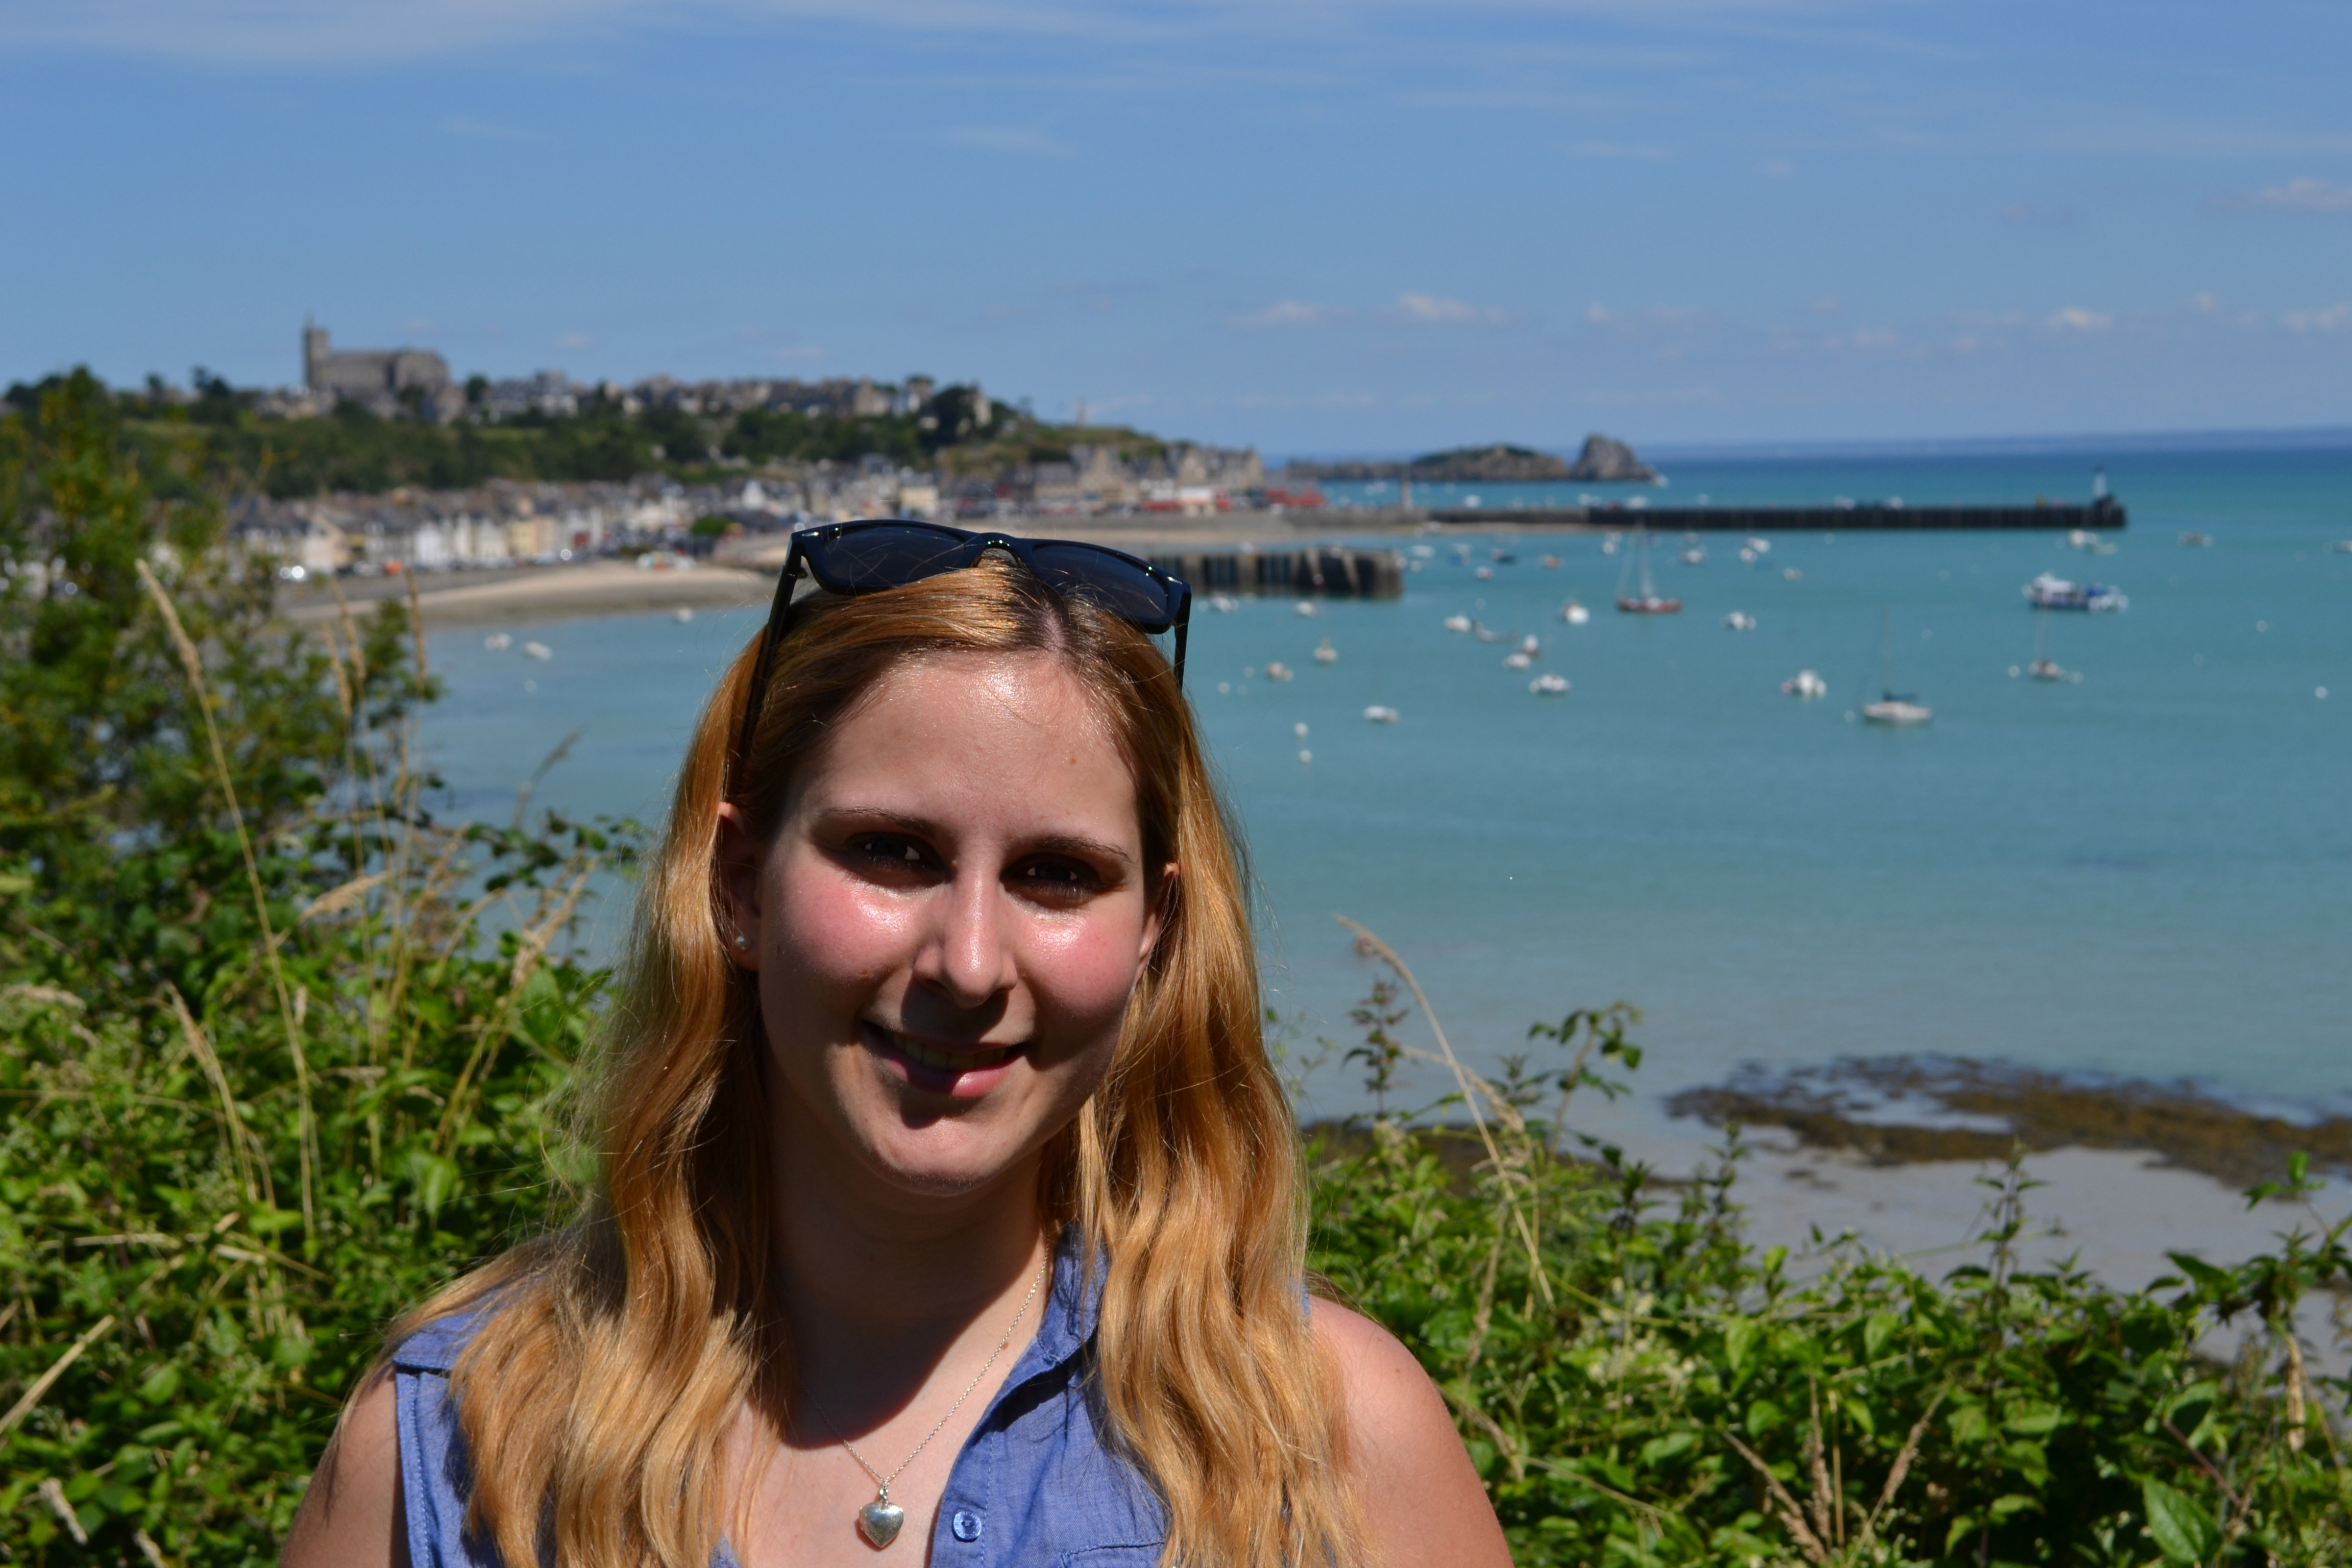 Aurelia Pradel, shown here in Cancale, Brittany, France, will teach introductory French courses this year at Tech.